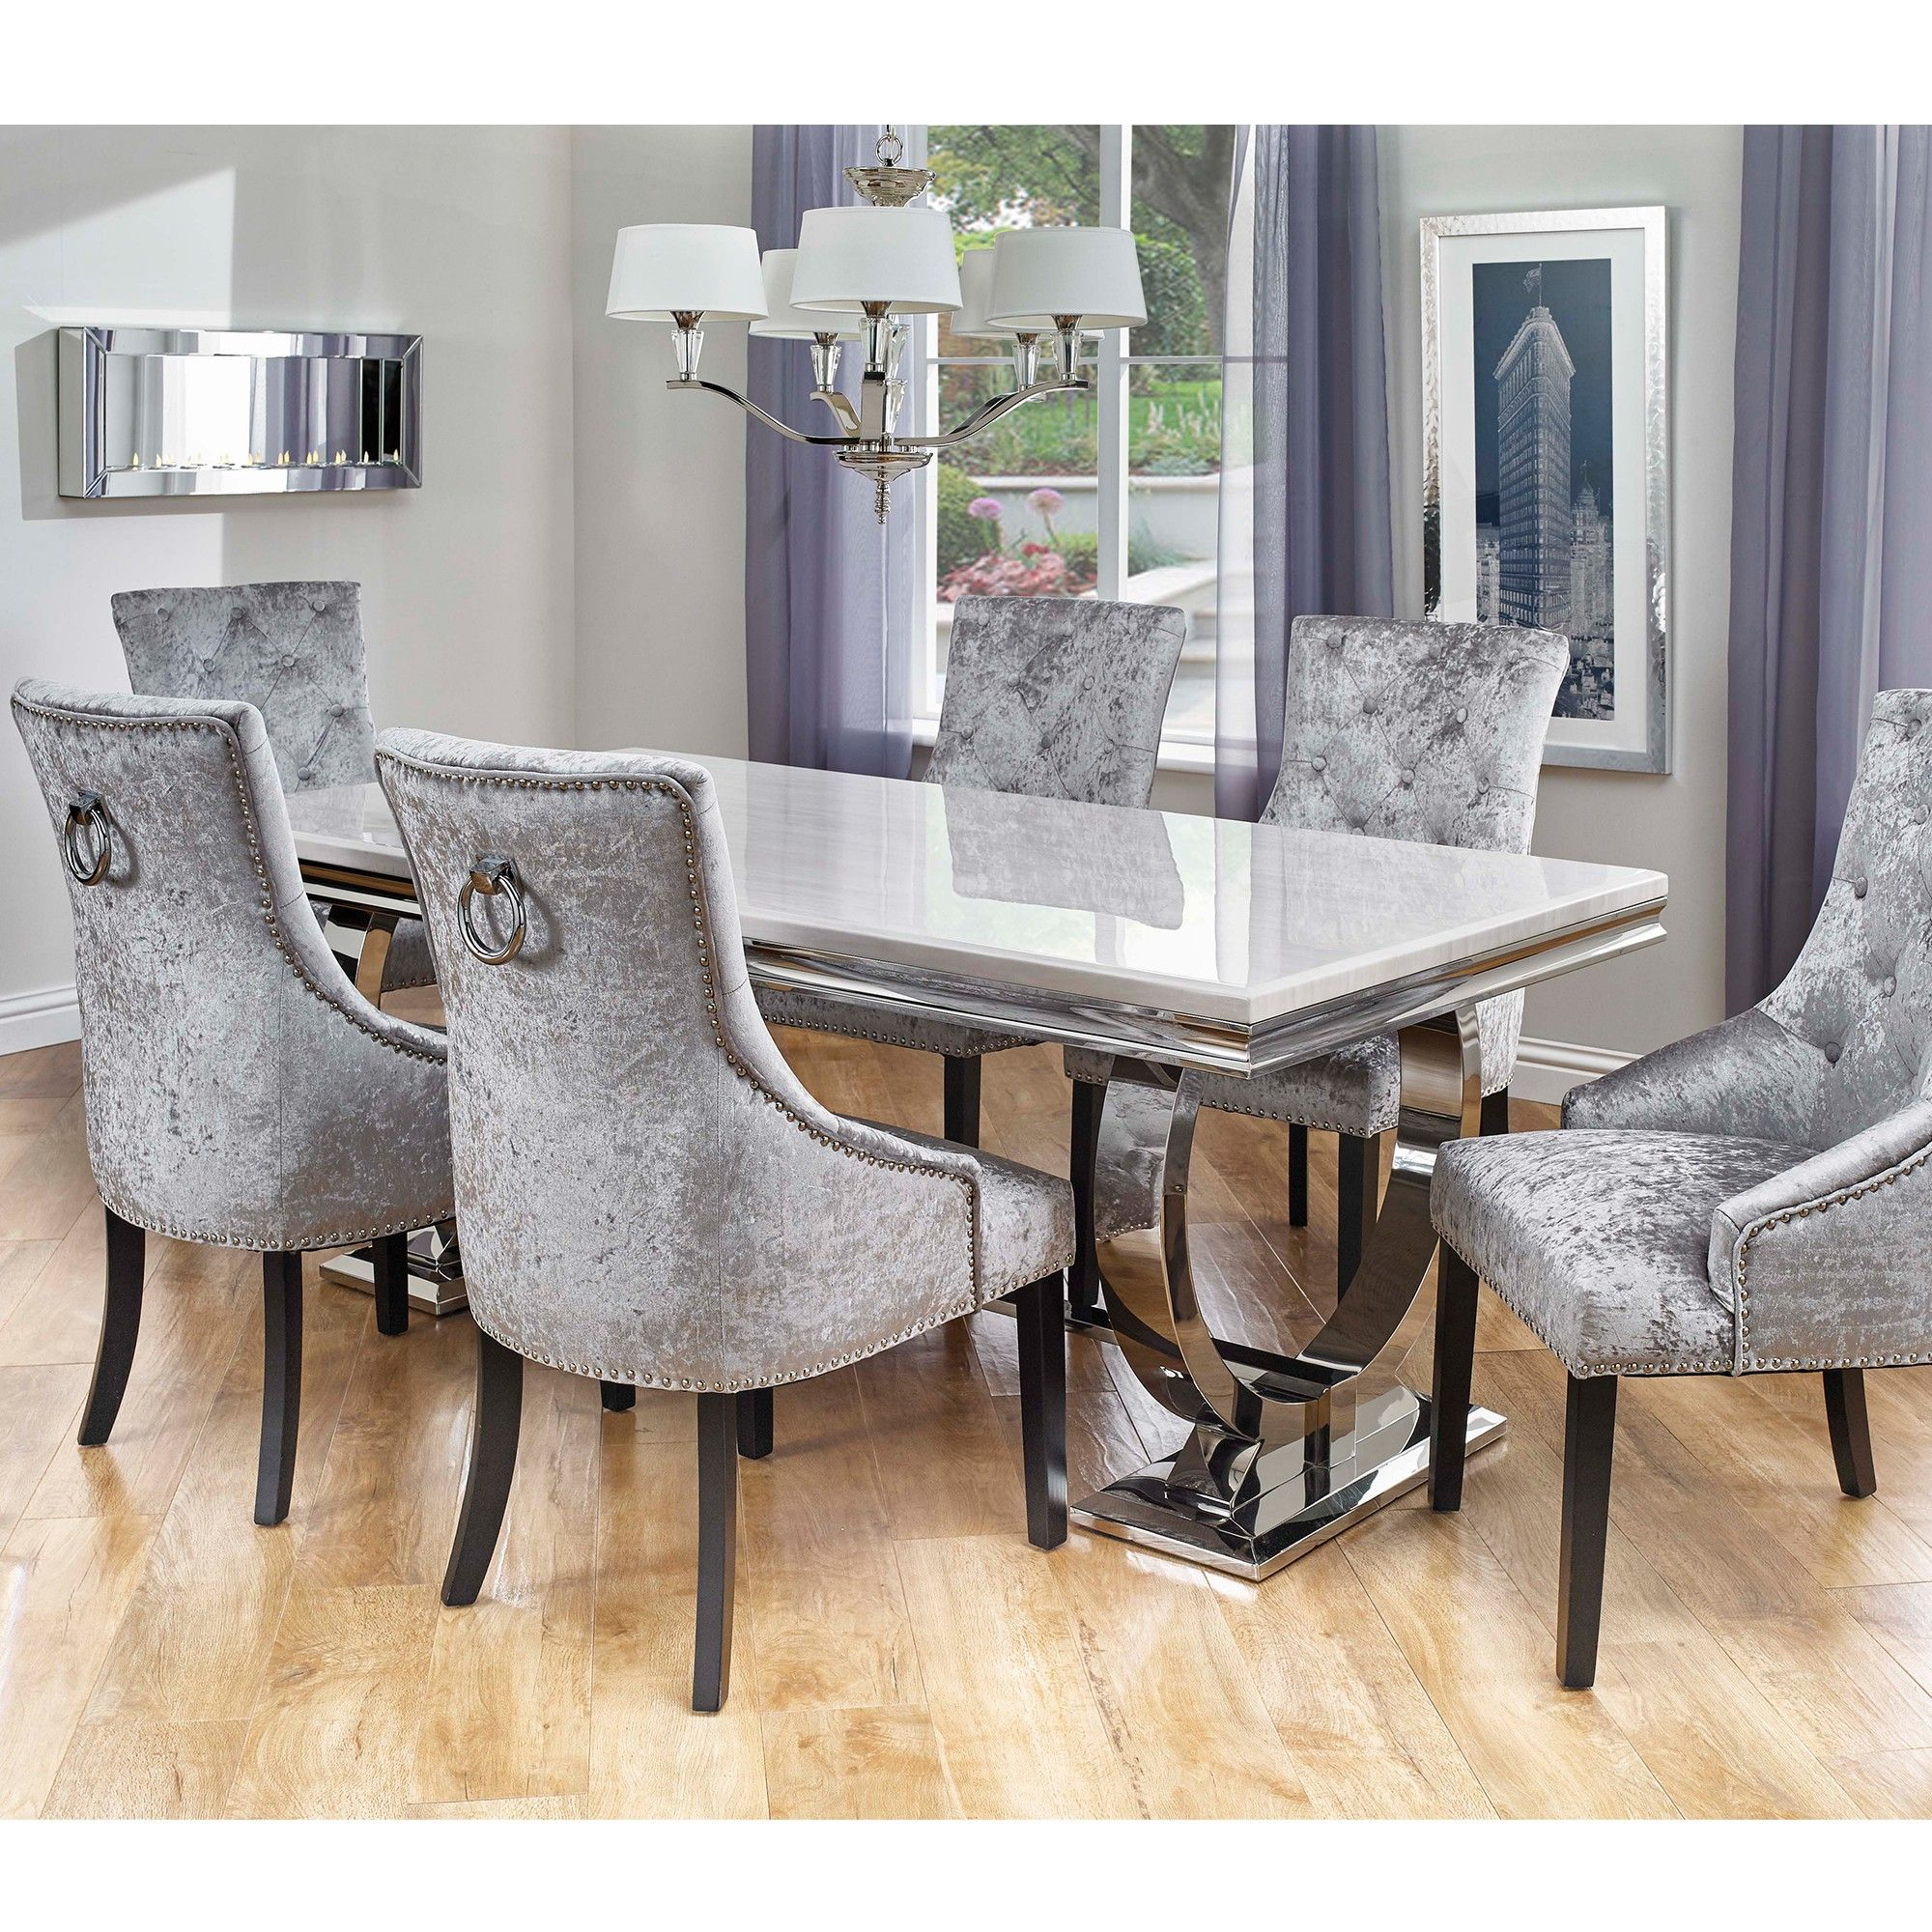 Fine Dining Table And 6 Chairs Great 72 On Home